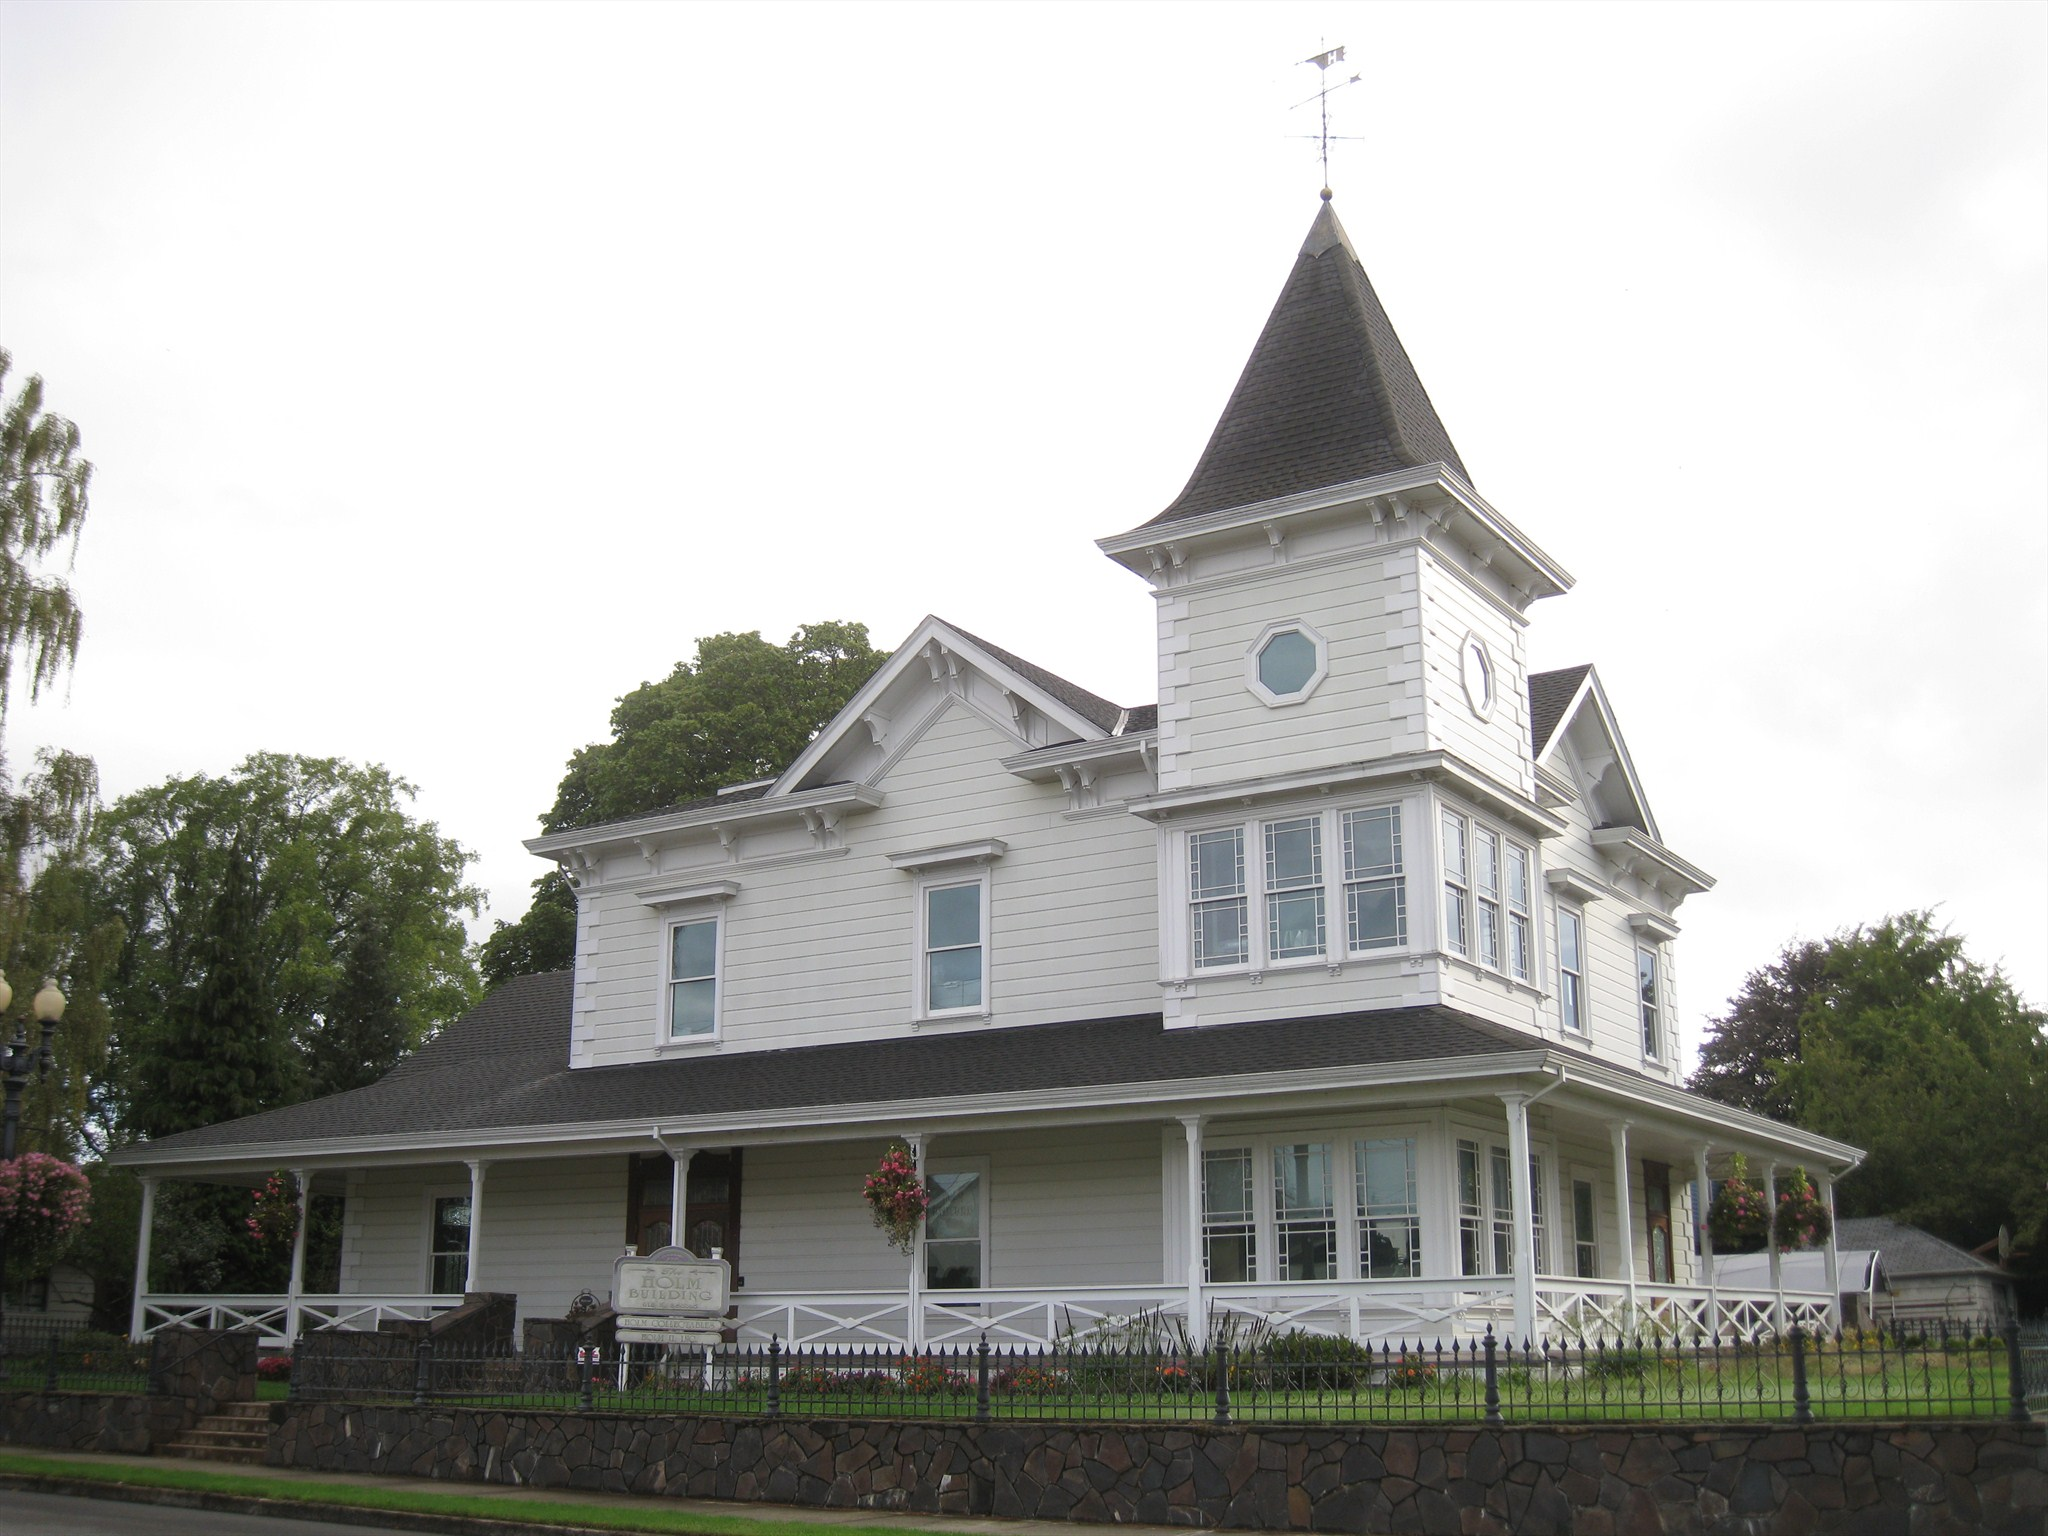 Holm building stayton oregon victorian houses on for Building a victorian house